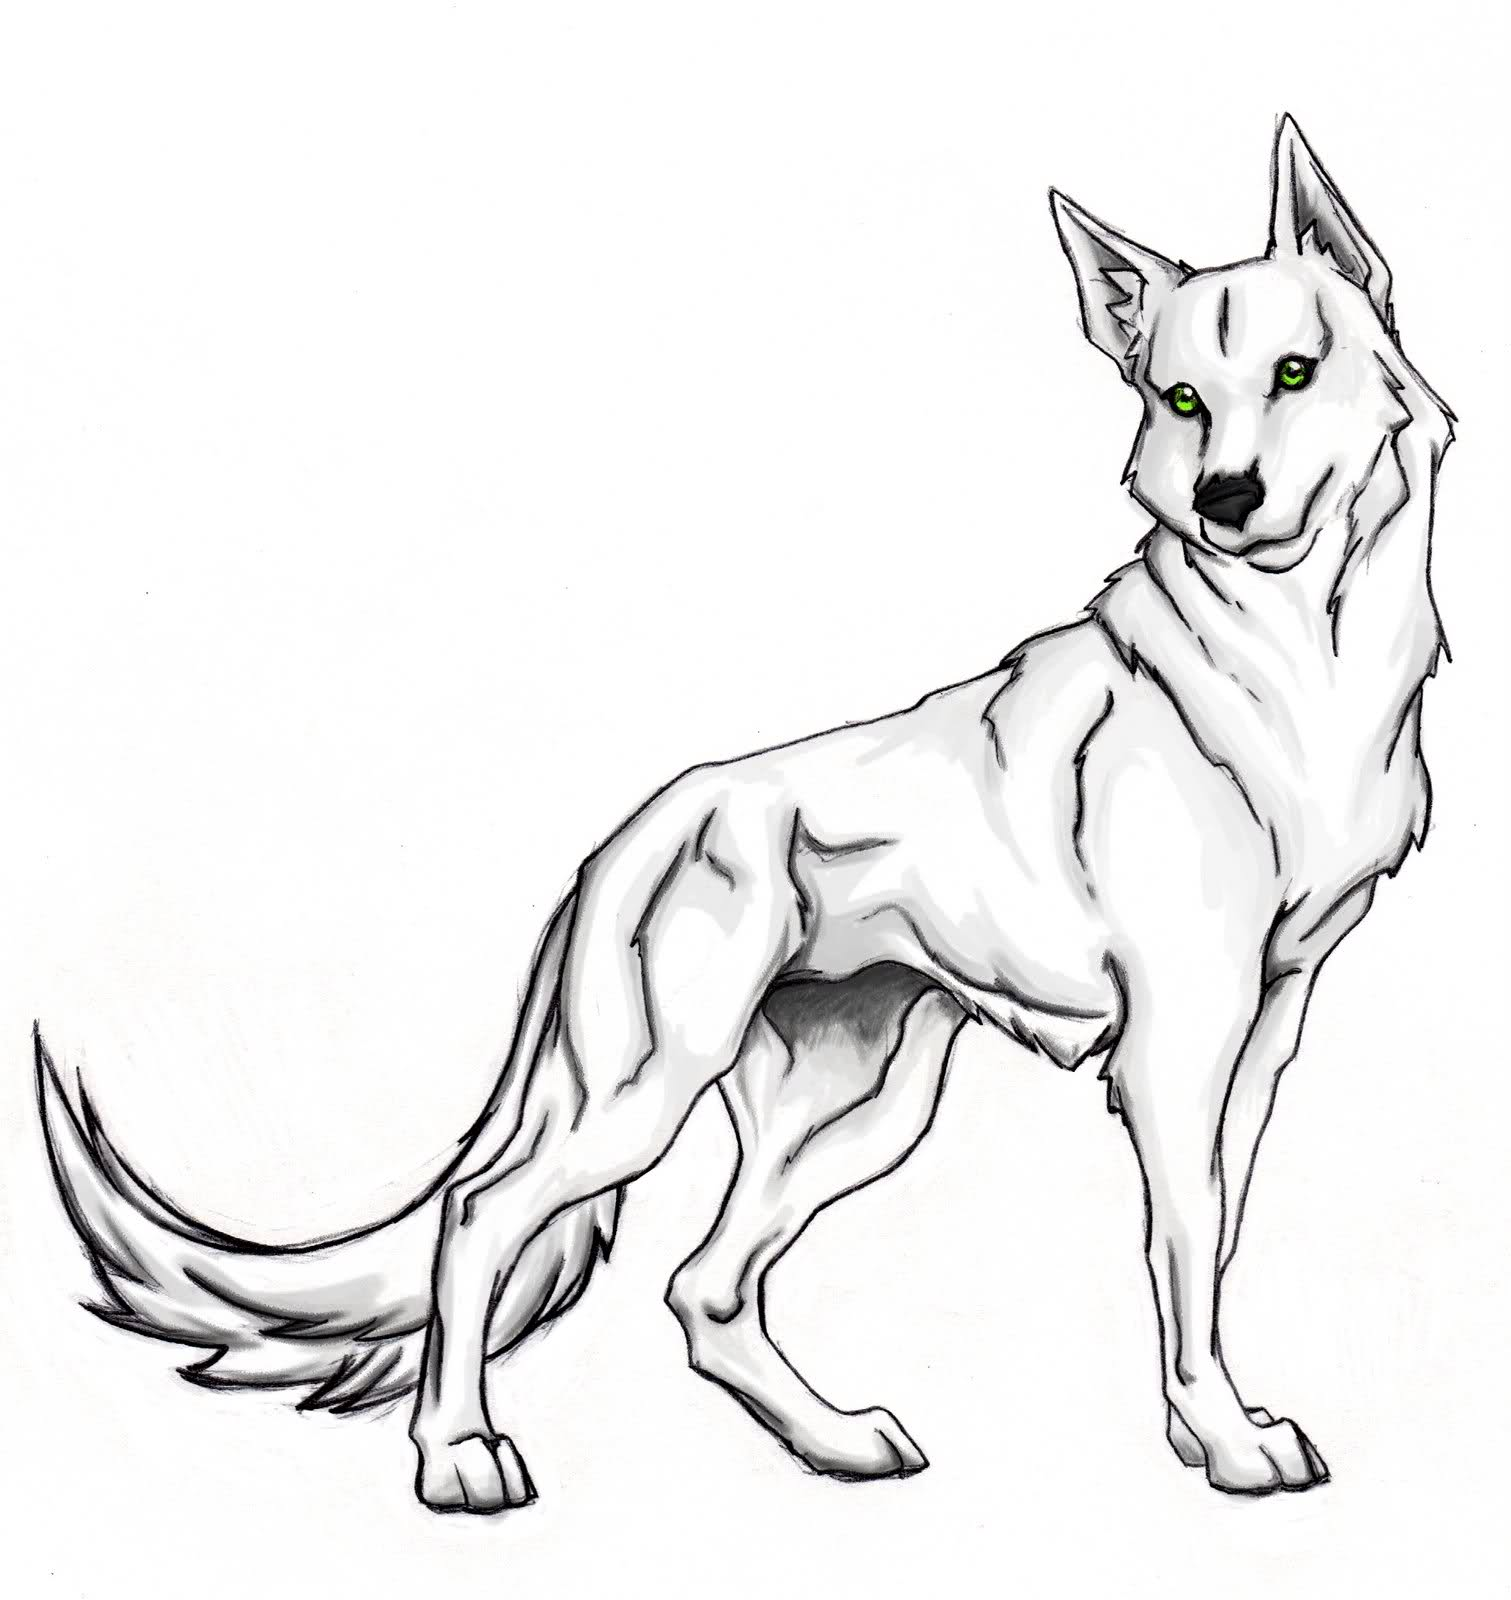 Drawn howling wolf silhouette Colouring howling Page wolf at